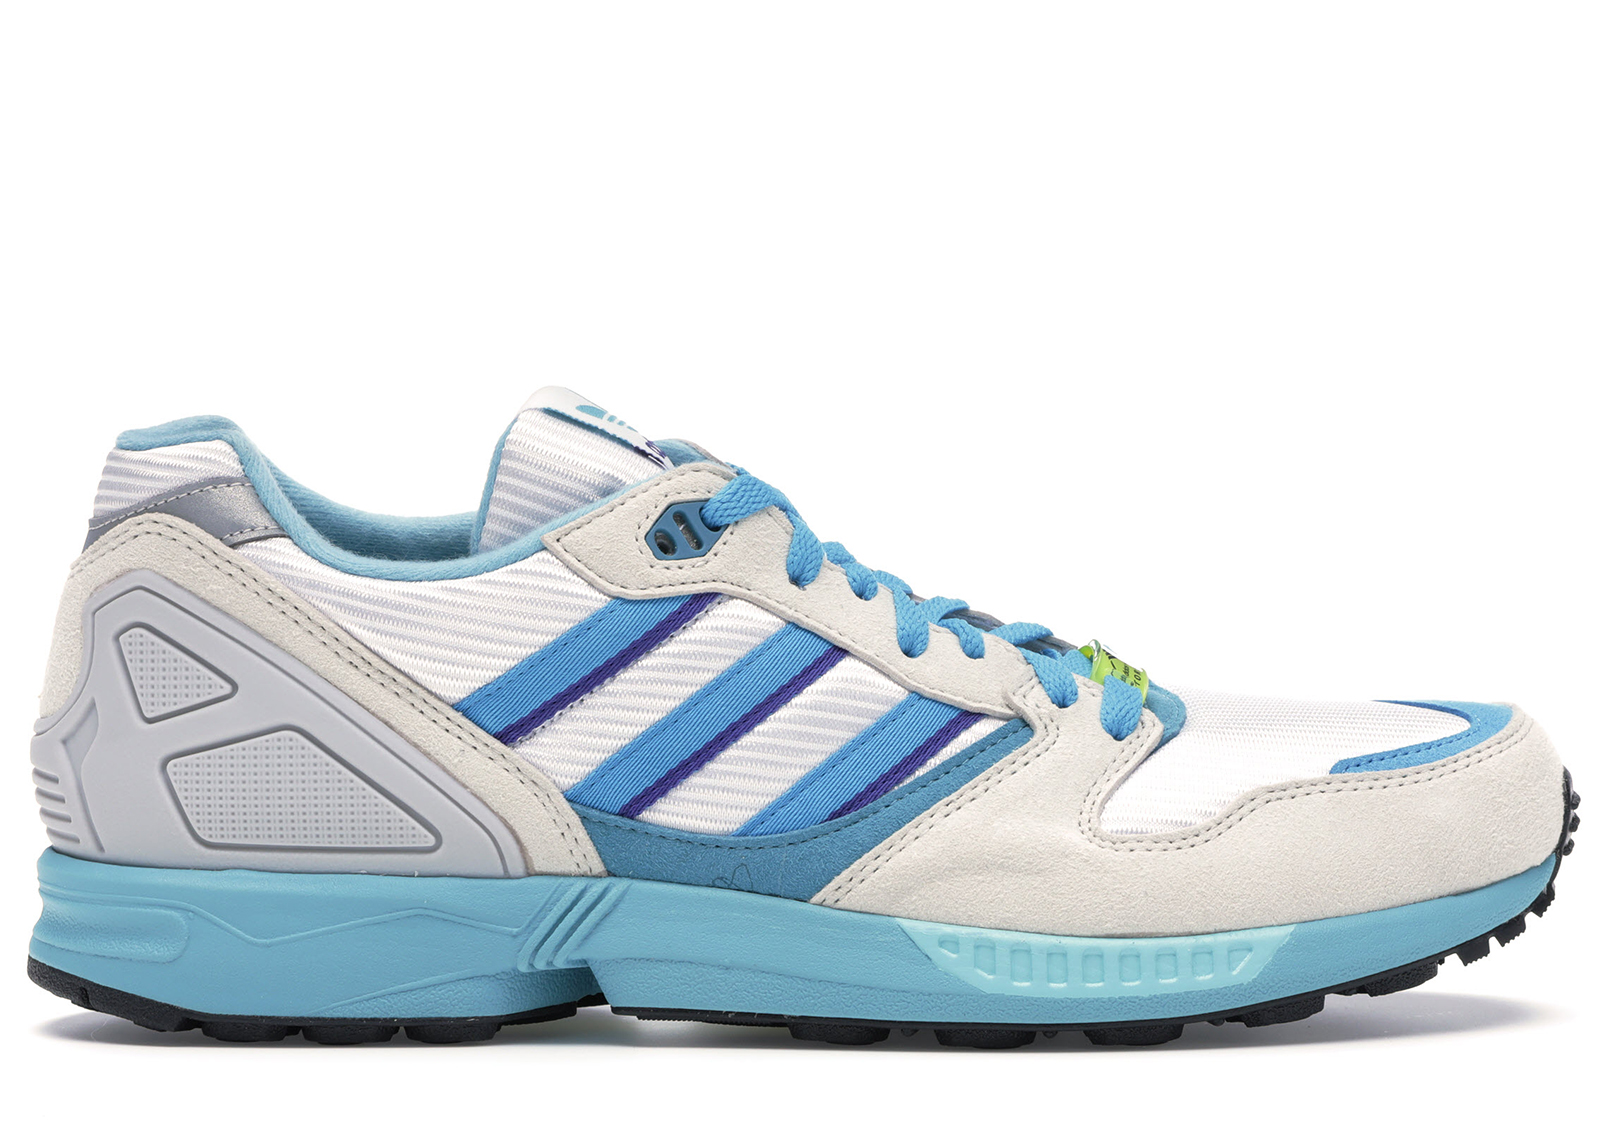 adidas ZX 5000 30 Years of Torsion - FU8406